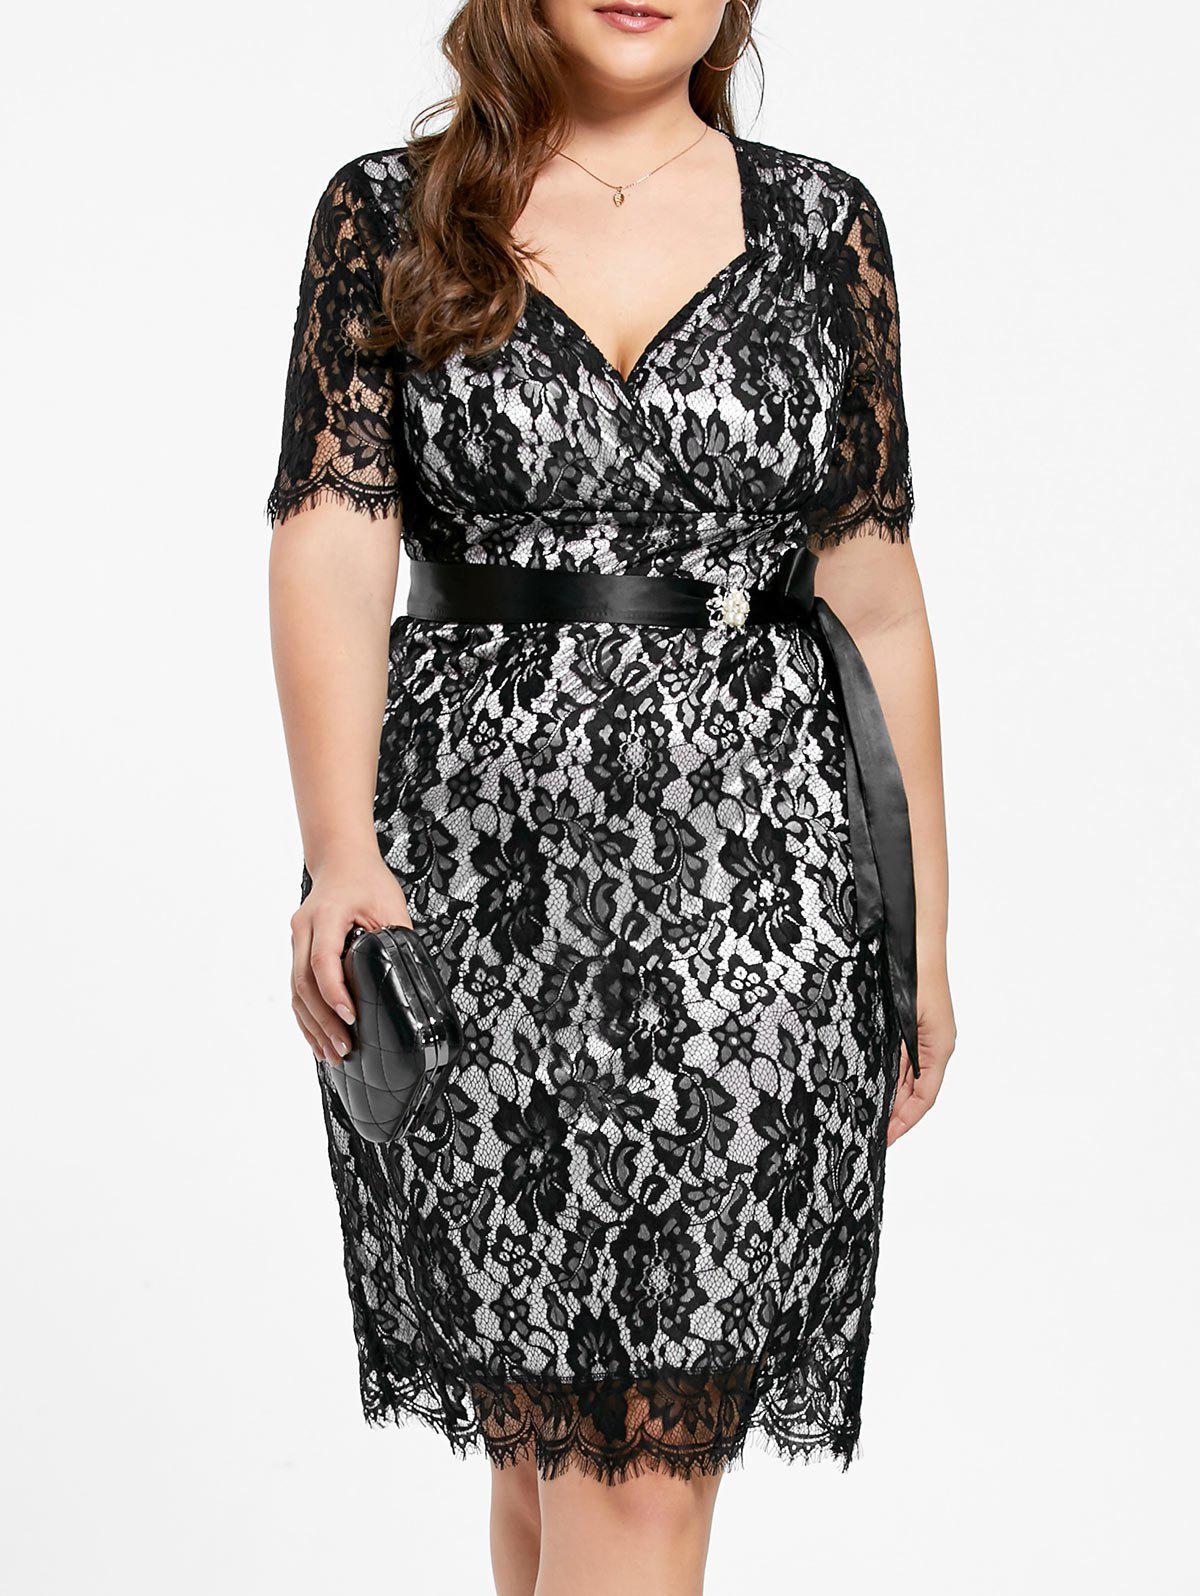 Formal Plus Size V Neck Lace Sheath DressWOMEN<br><br>Size: 5XL; Color: BLACK WHITE; Style: Cute; Material: Polyester; Silhouette: Sheath; Dresses Length: Knee-Length; Neckline: Sweetheart Neck; Sleeve Length: Short Sleeves; Embellishment: Lace; Pattern Type: Others; With Belt: Yes; Season: Fall,Spring; Weight: 0.3000kg; Package Contents: 1 x Dress  1 x Belt;